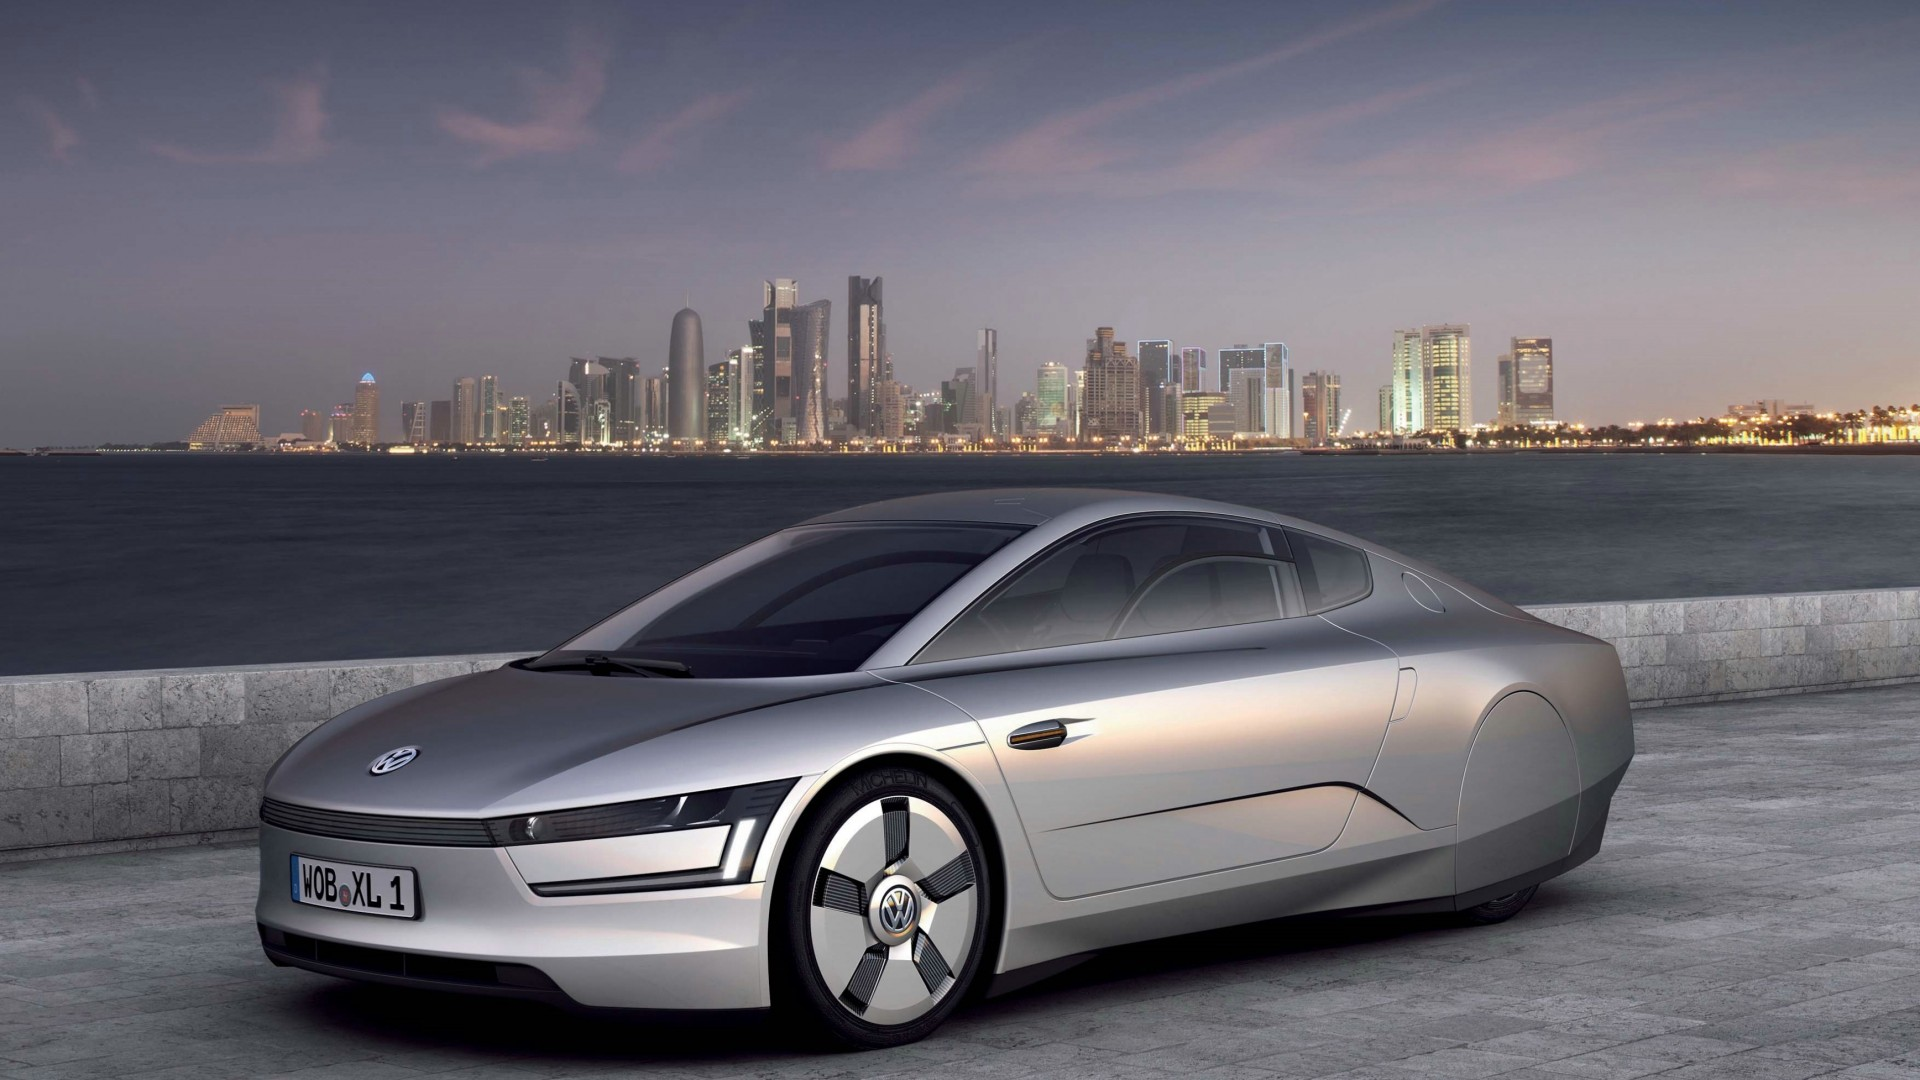 wallpaper volkswagen xl electric cars volkswagen hybrid ecosafe  electric cars